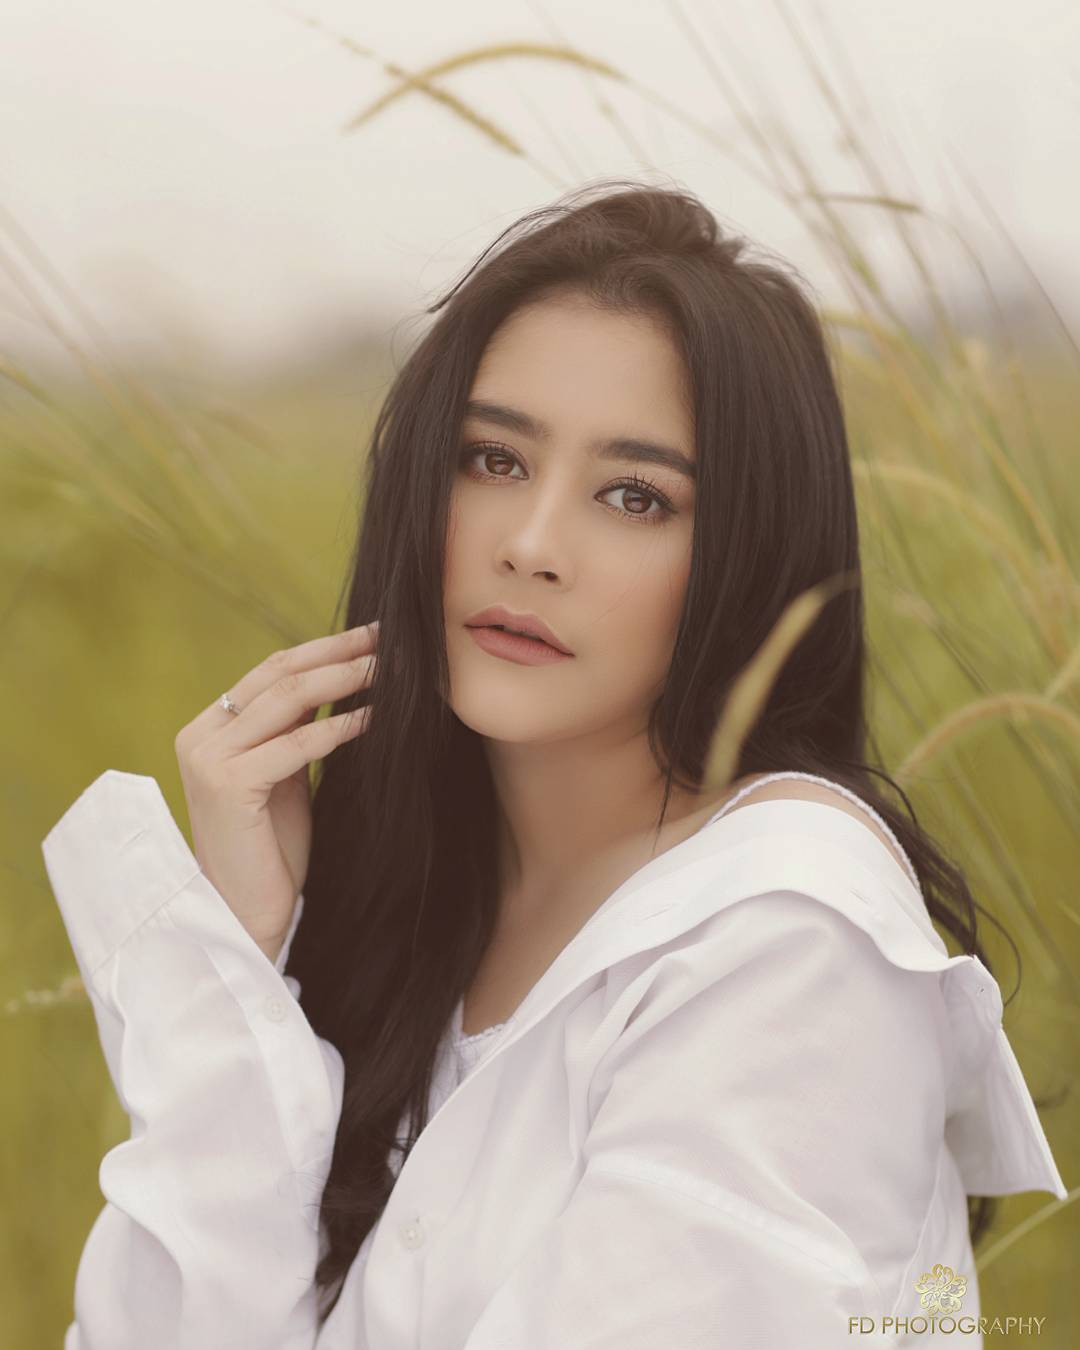 Prilly Latuconsina Instagram username